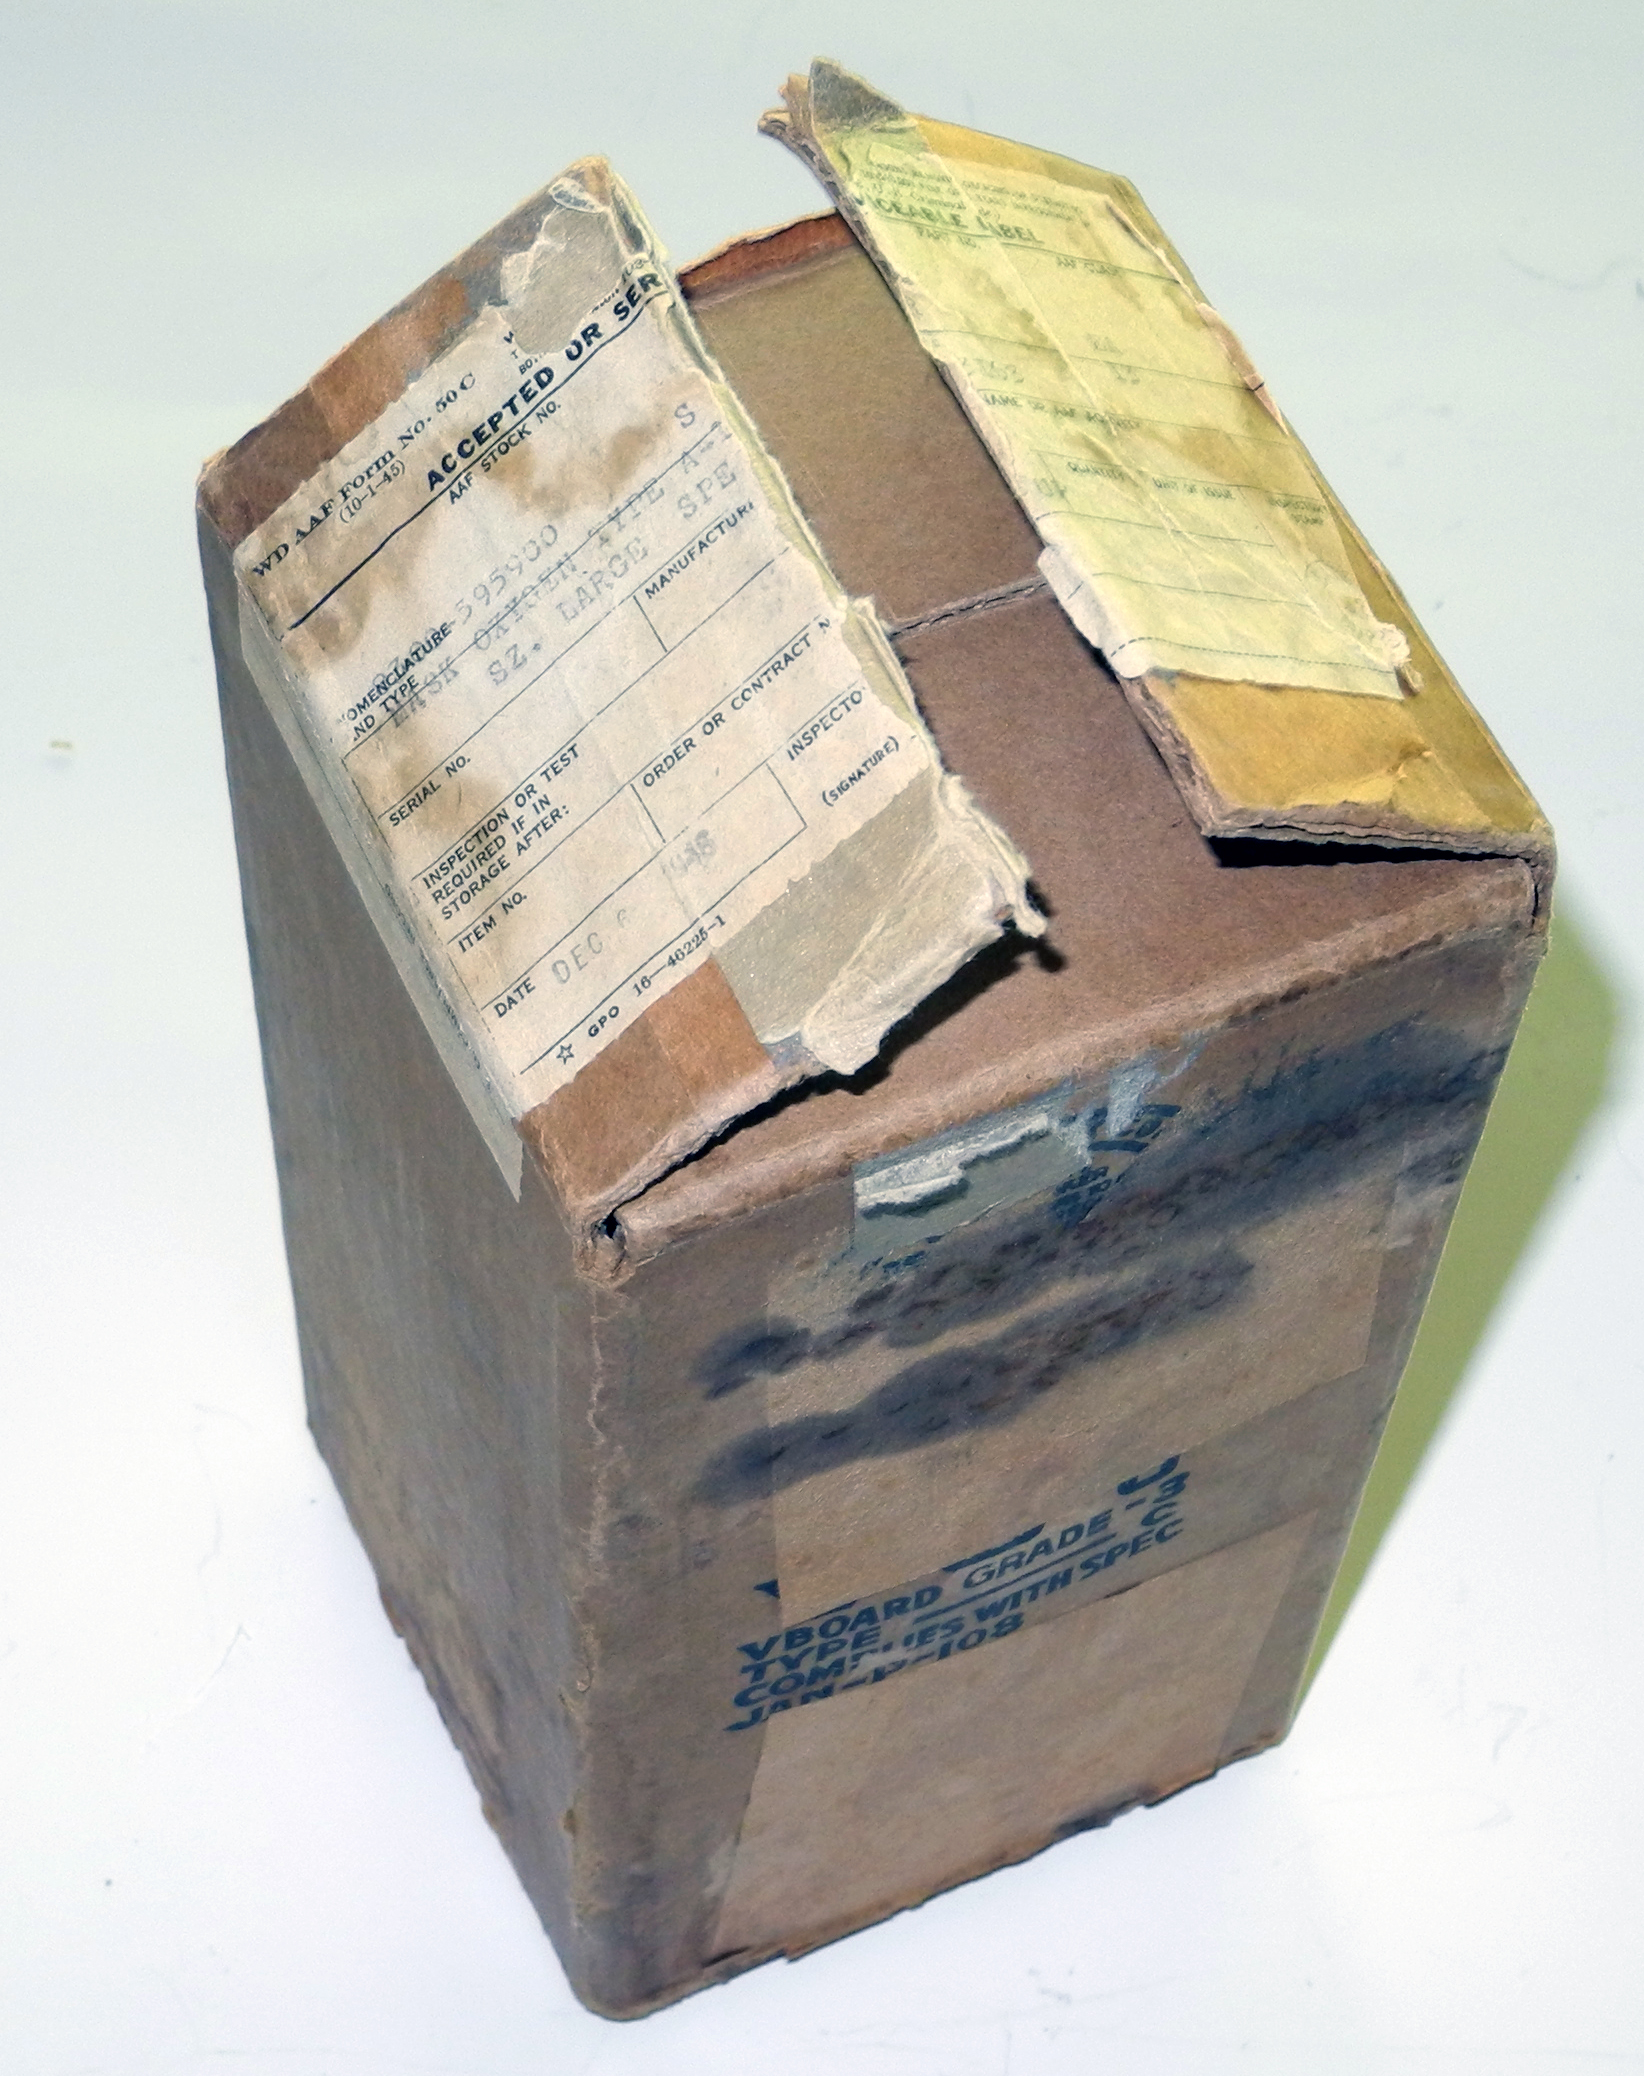 AAF A-14 LARGE with unusual box